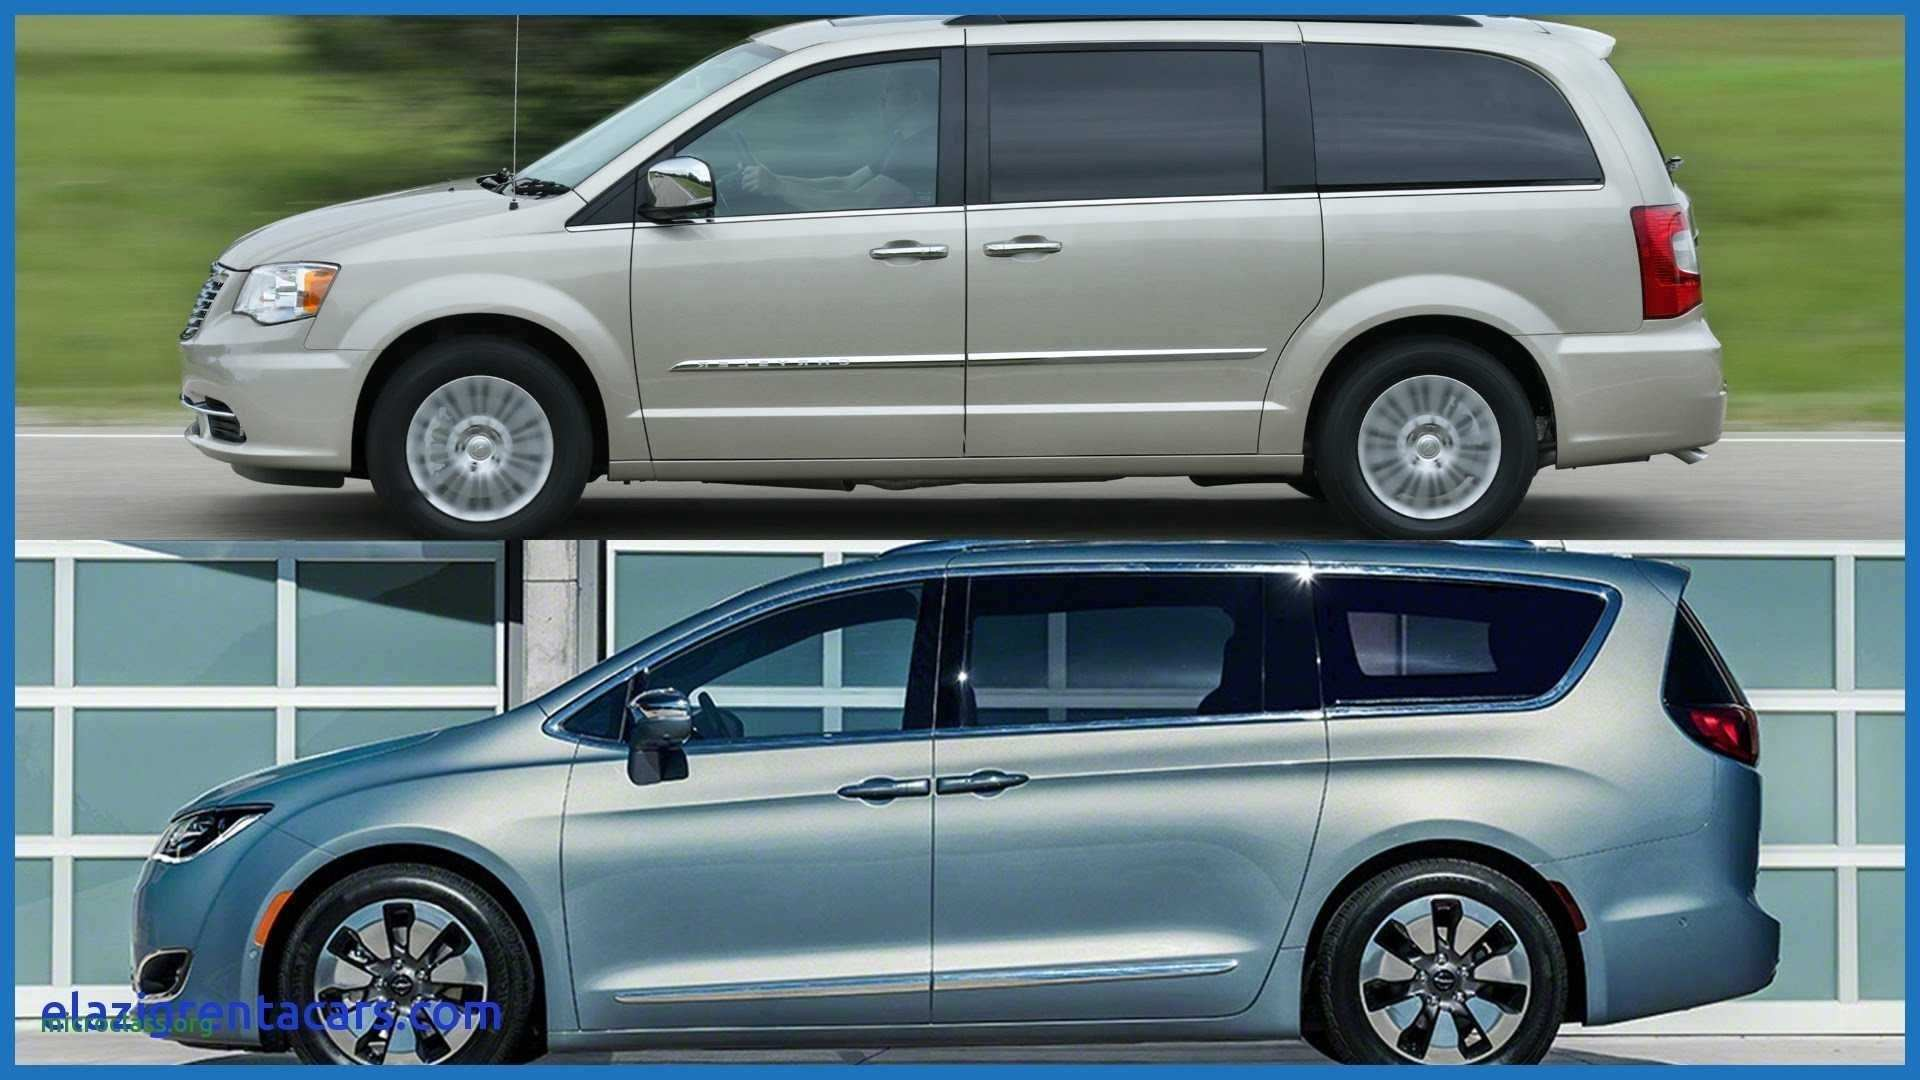 71 The Best 2020 Chrysler Town Country Pricing